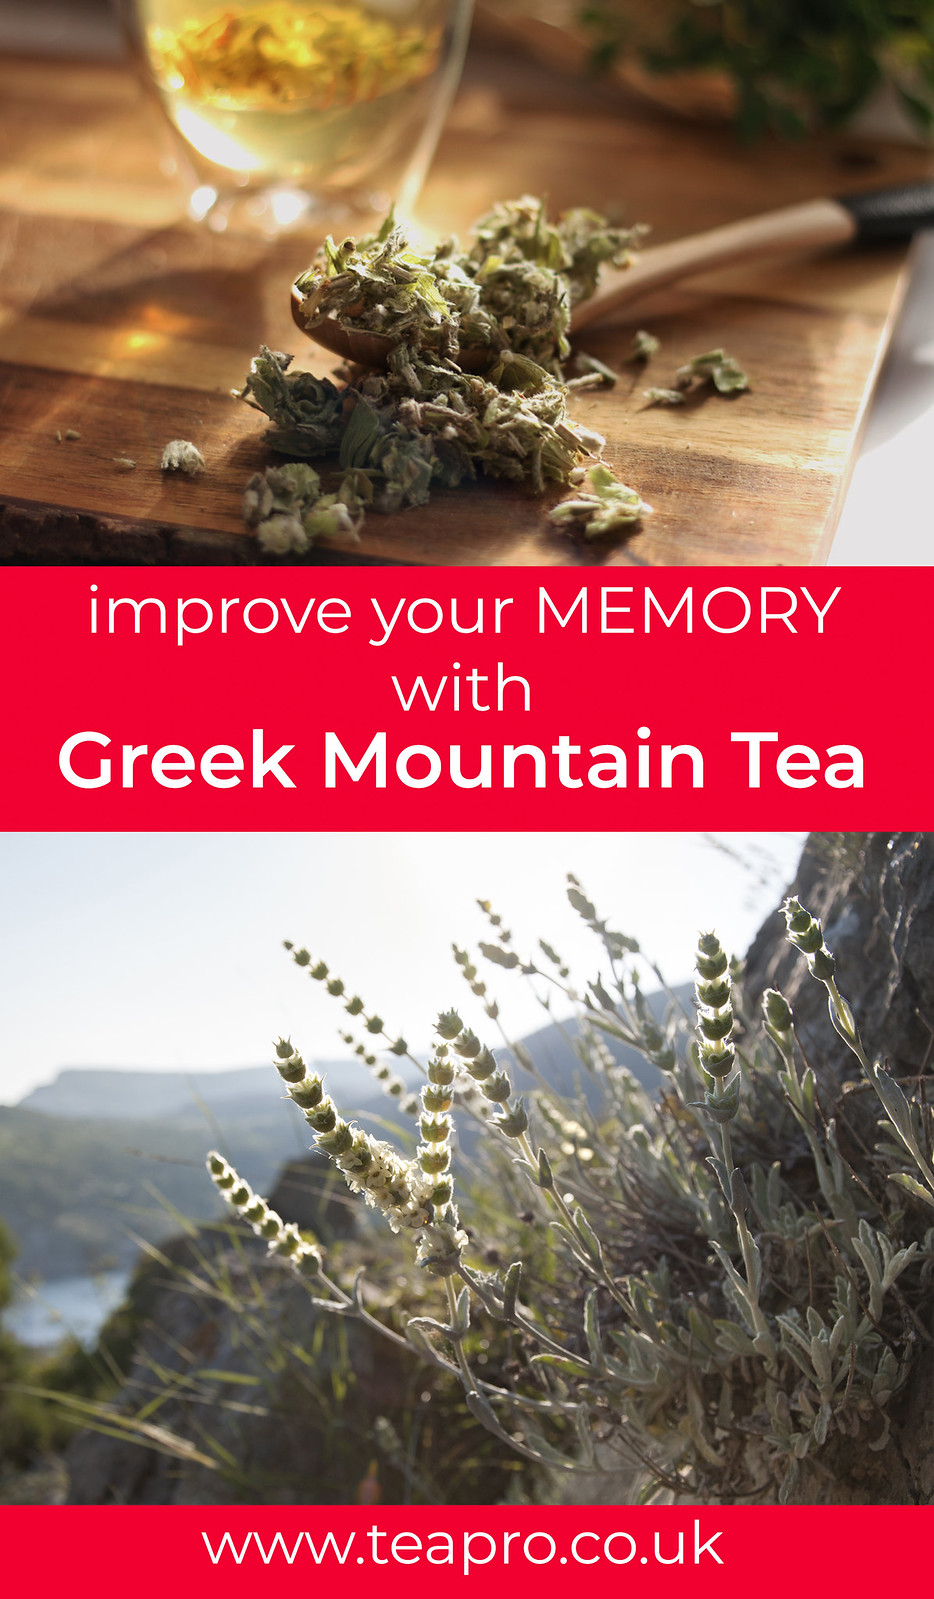 GREEK-mountain-tea-pinterest